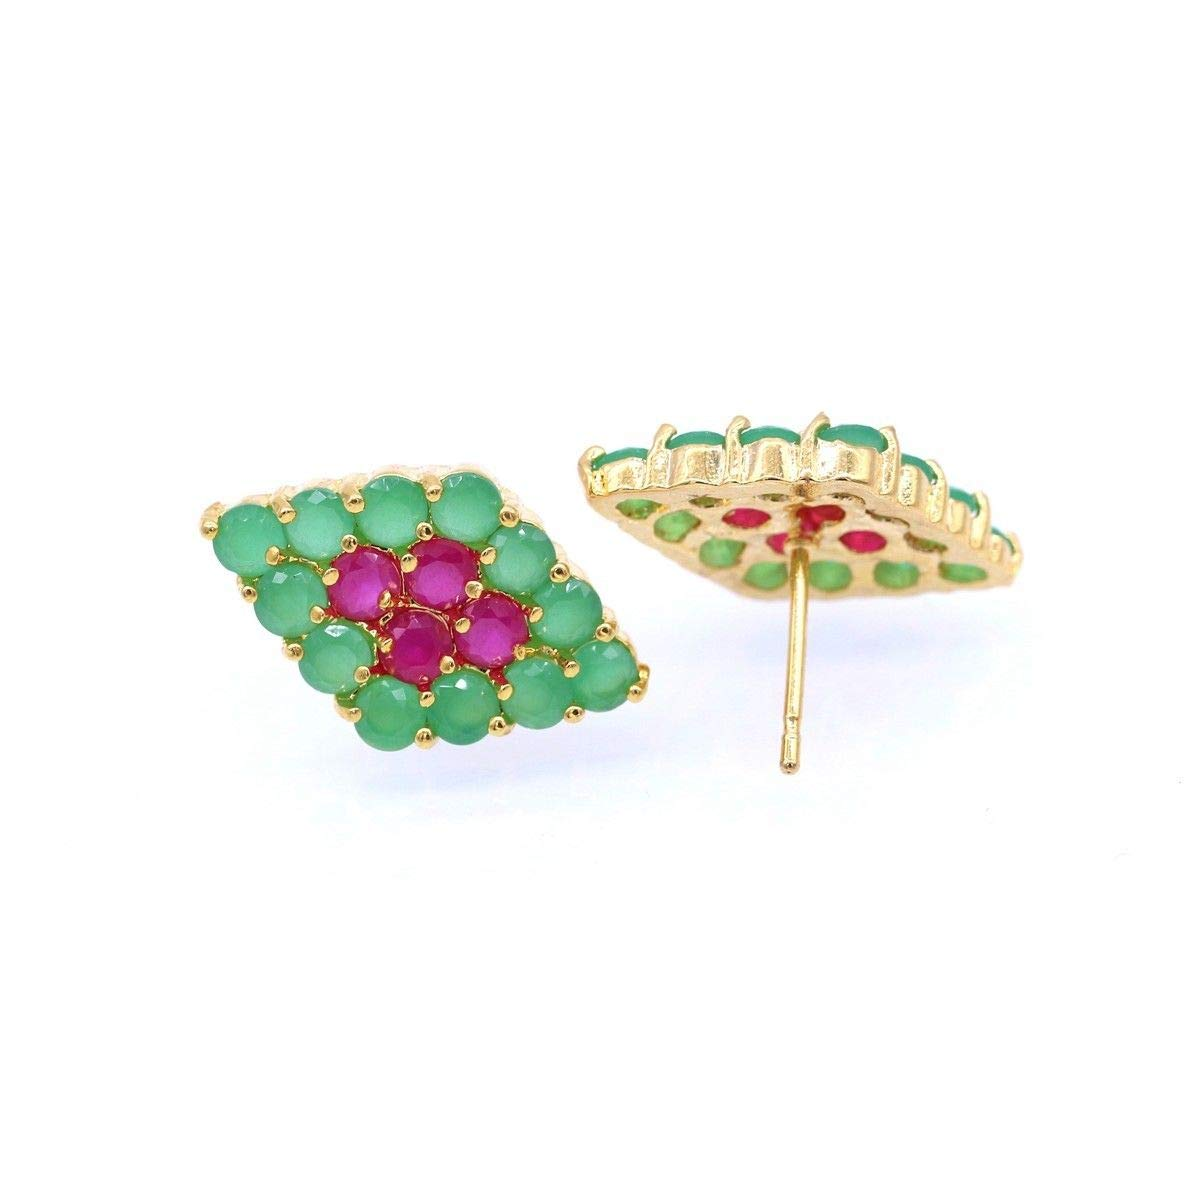 CRISTORE Bride Ruby Emerald 18K Yellow Gold Plated Fashion Stud Earrings for Women